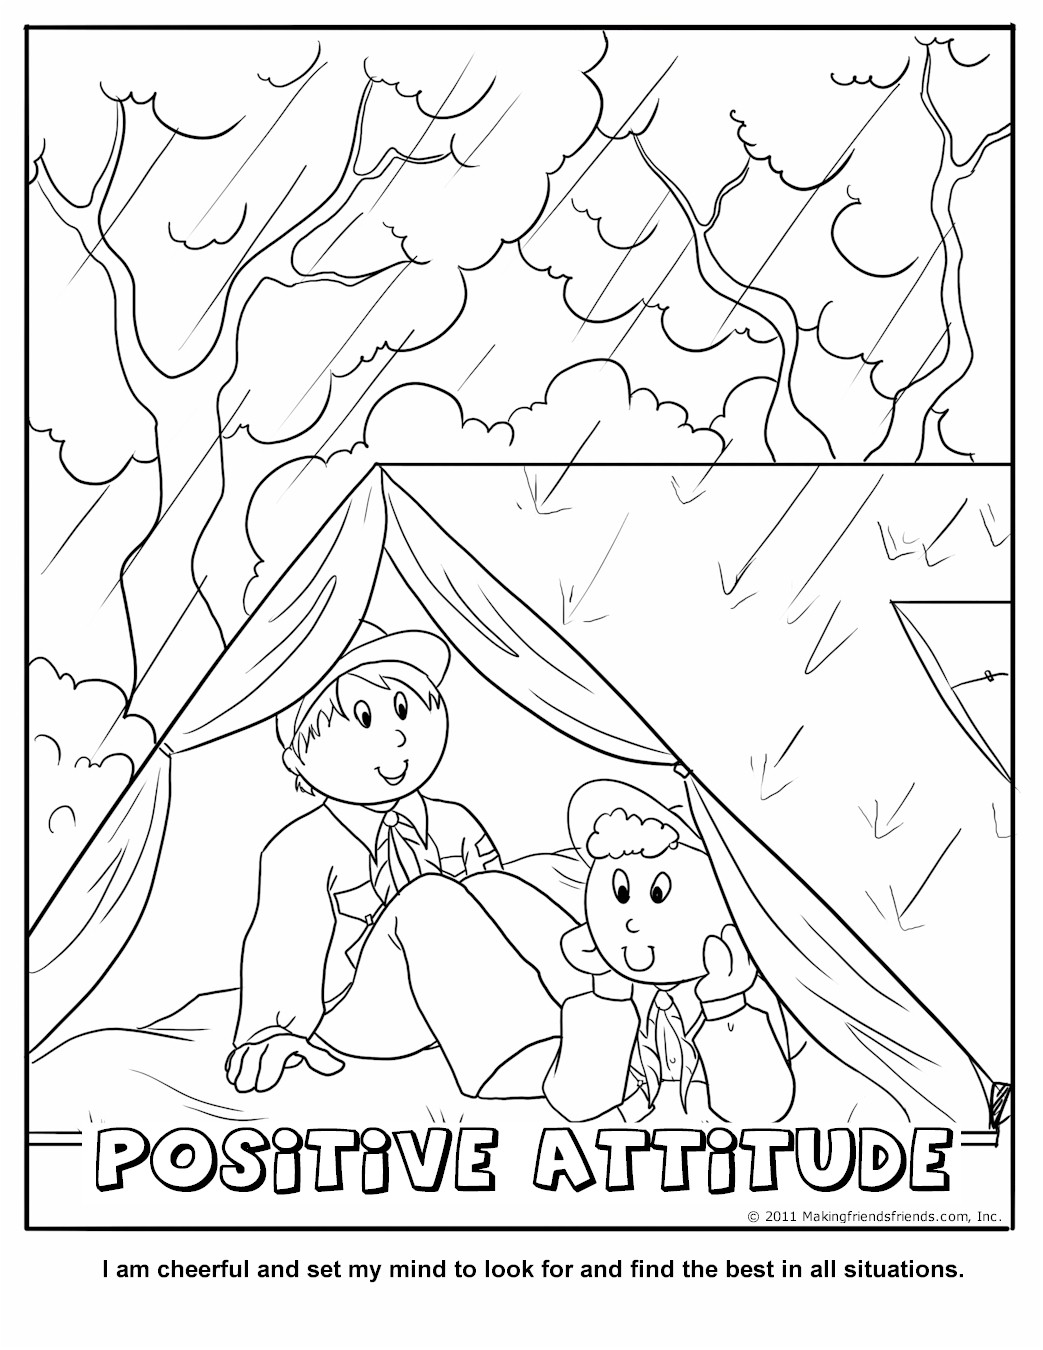 cub scout coloring pages free - photo#24